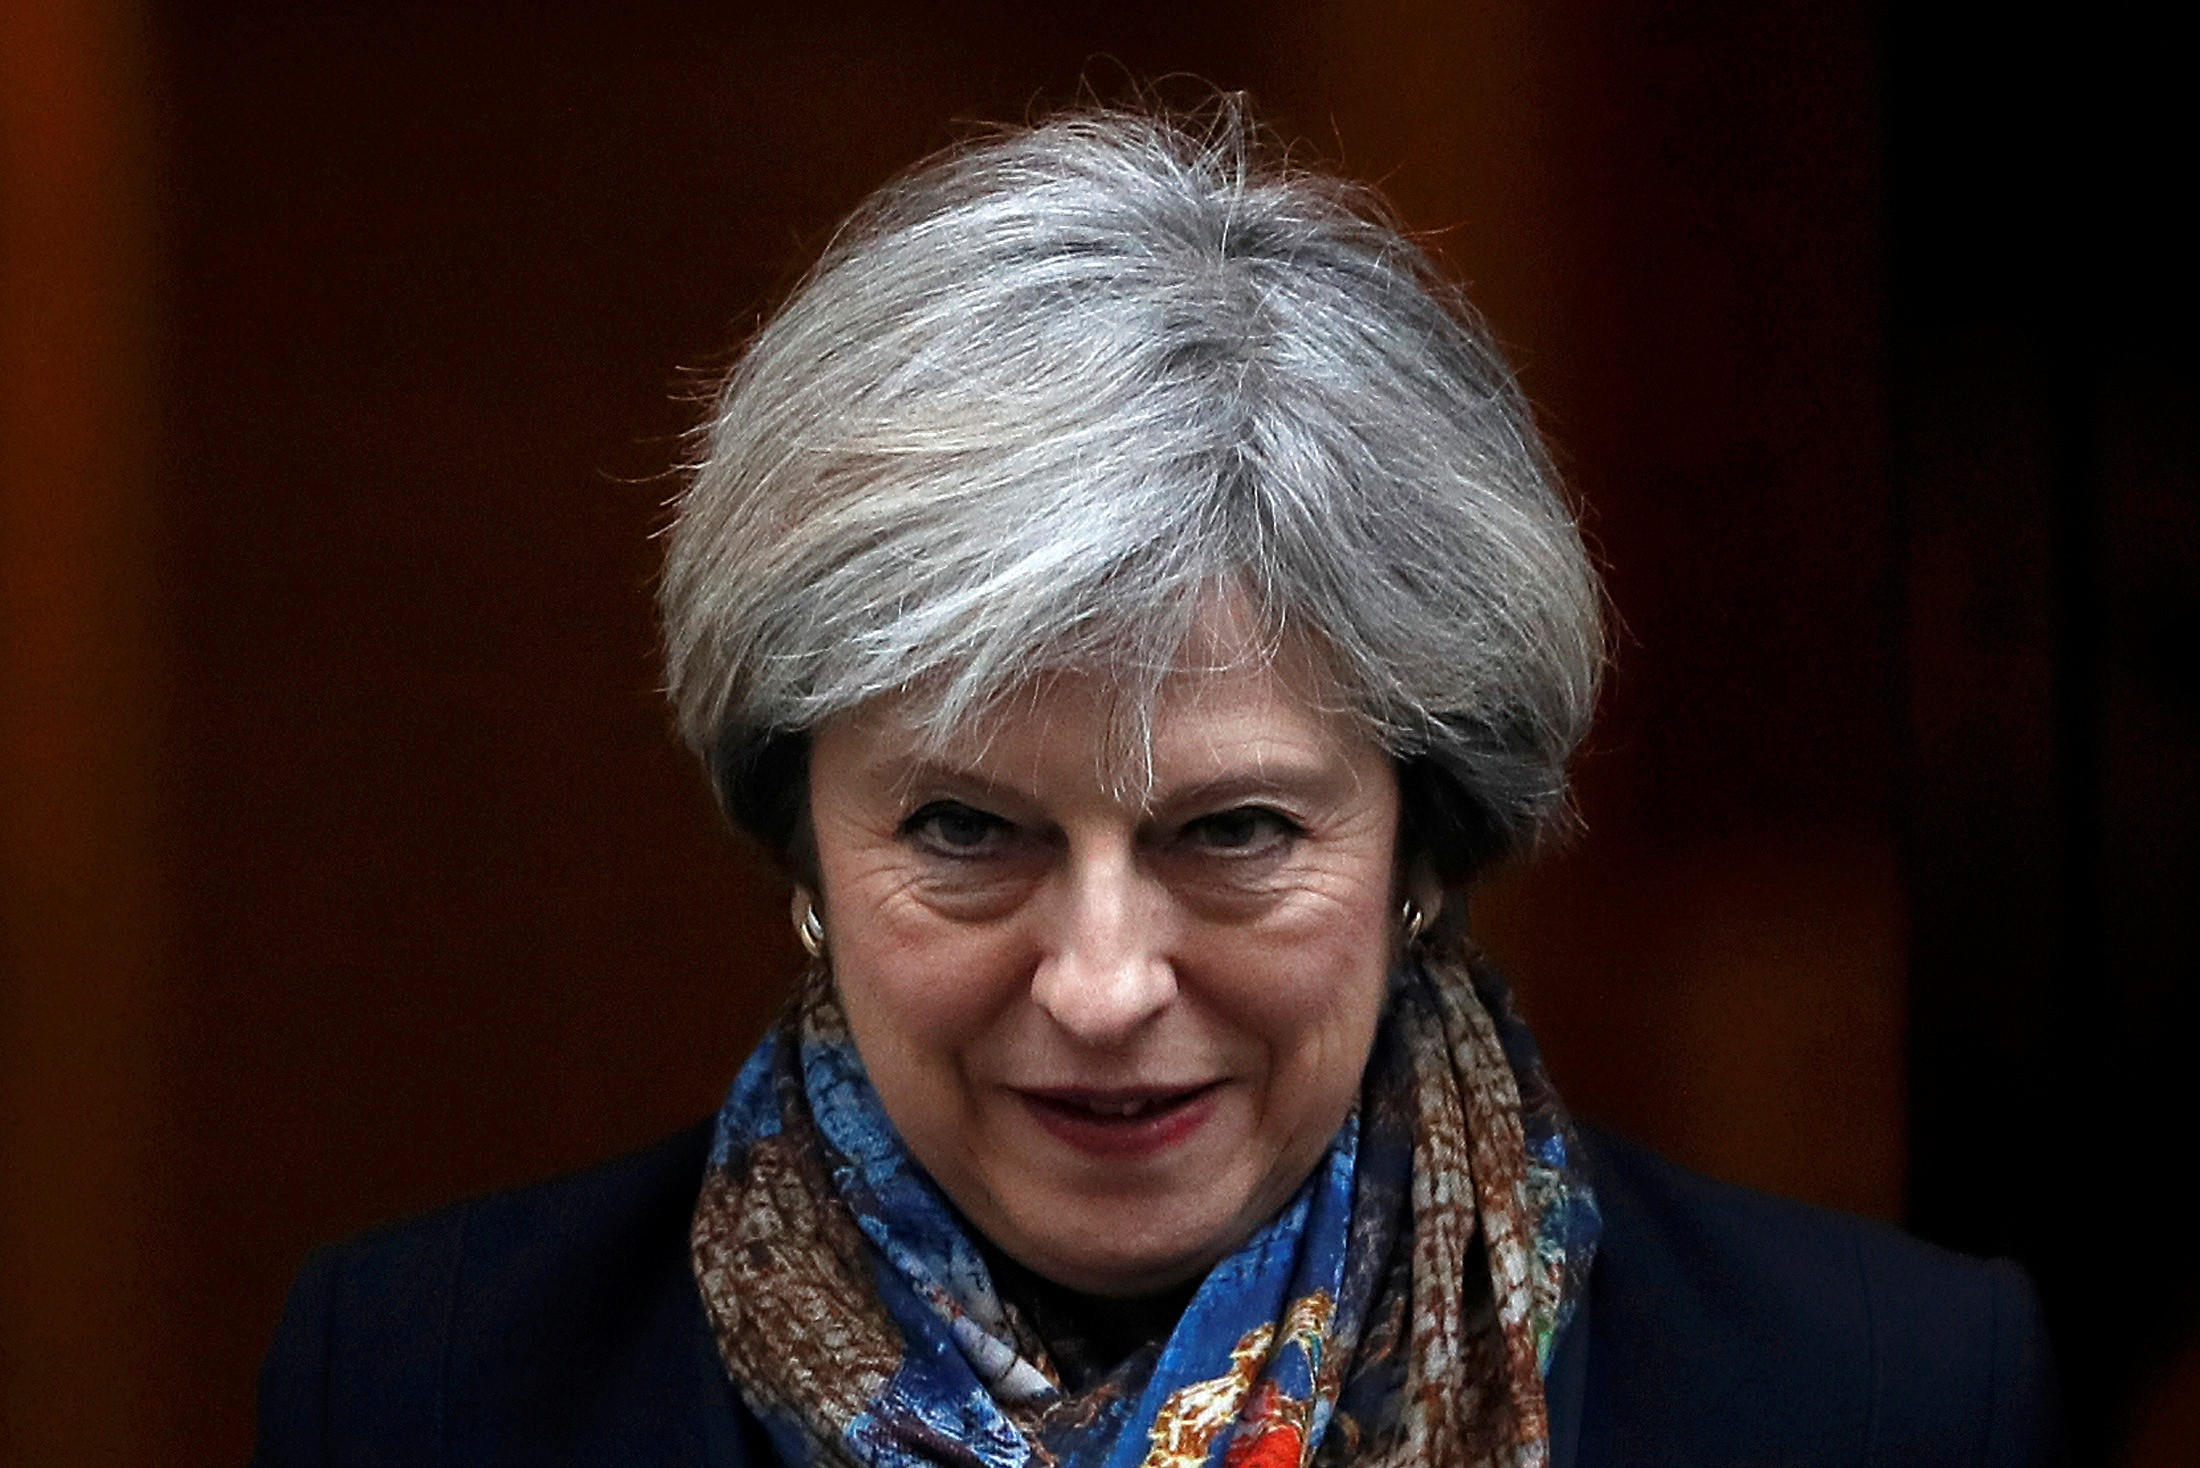 Britain's Prime Minister Theresa May leaves Number 10 Downing Street in London, Britain January 24, 2017. REUTERS/Stefan Wermuth TPX IMAGES OF THE DAY - RTSX4R2